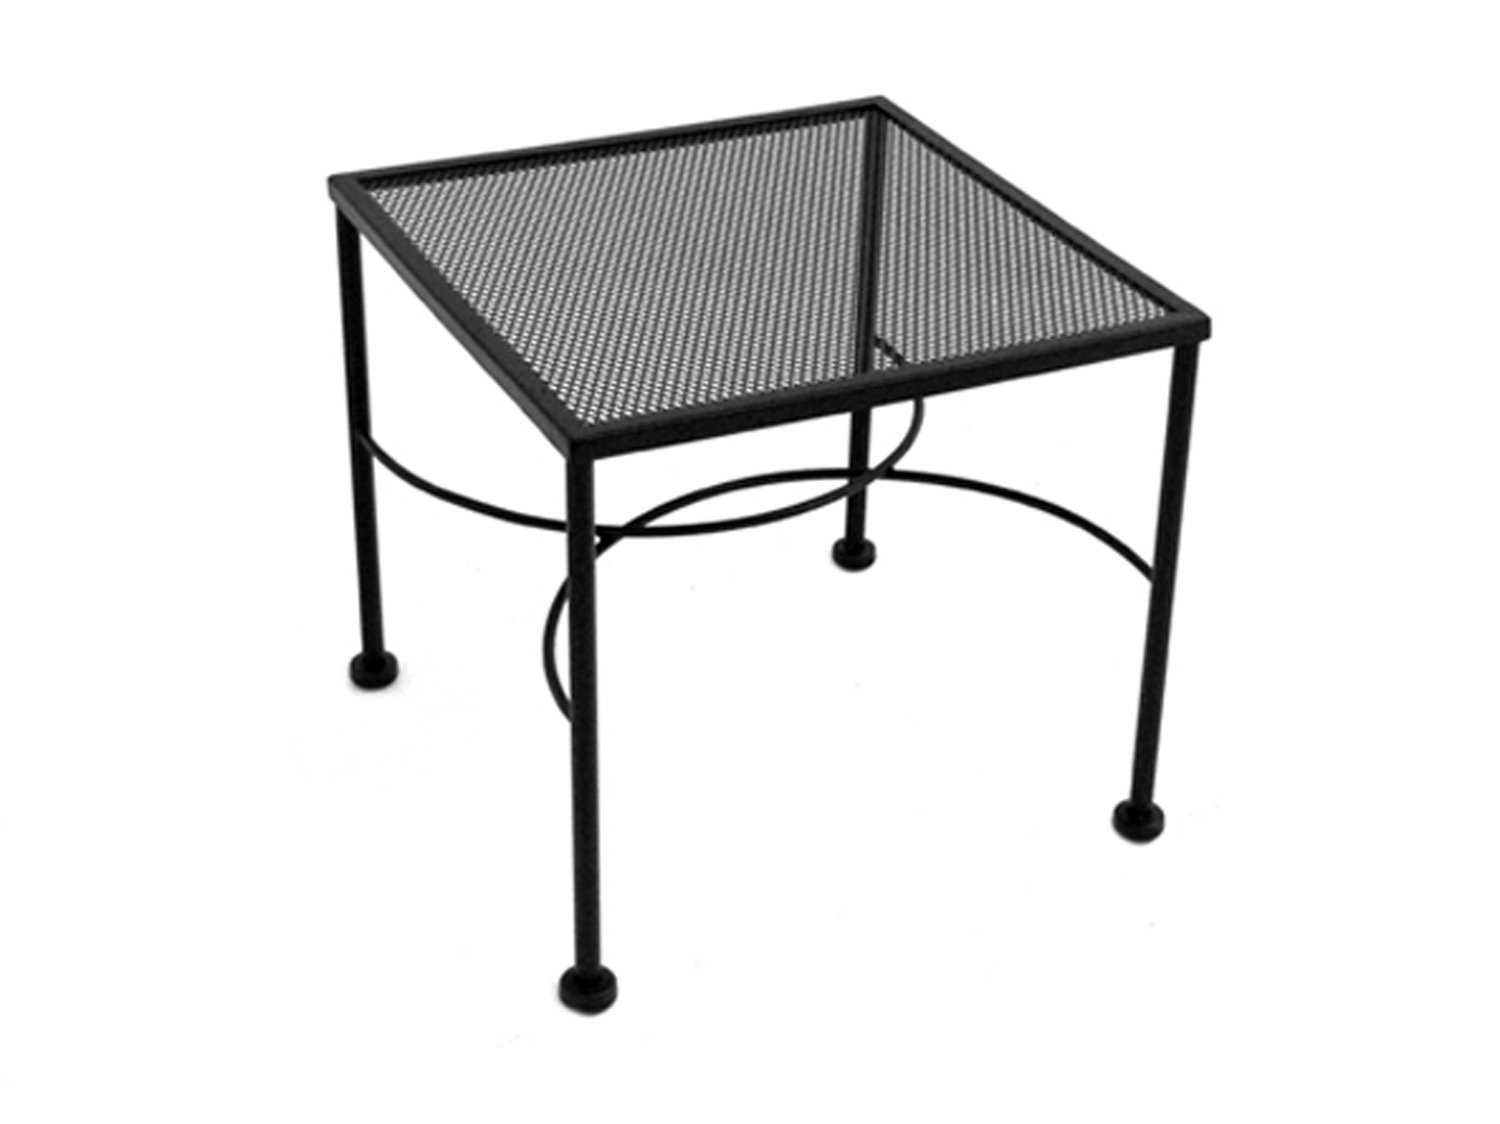 Meadowcraft Micro Mesh Wrought Iron 20 Wide Square End Table 3041220 01